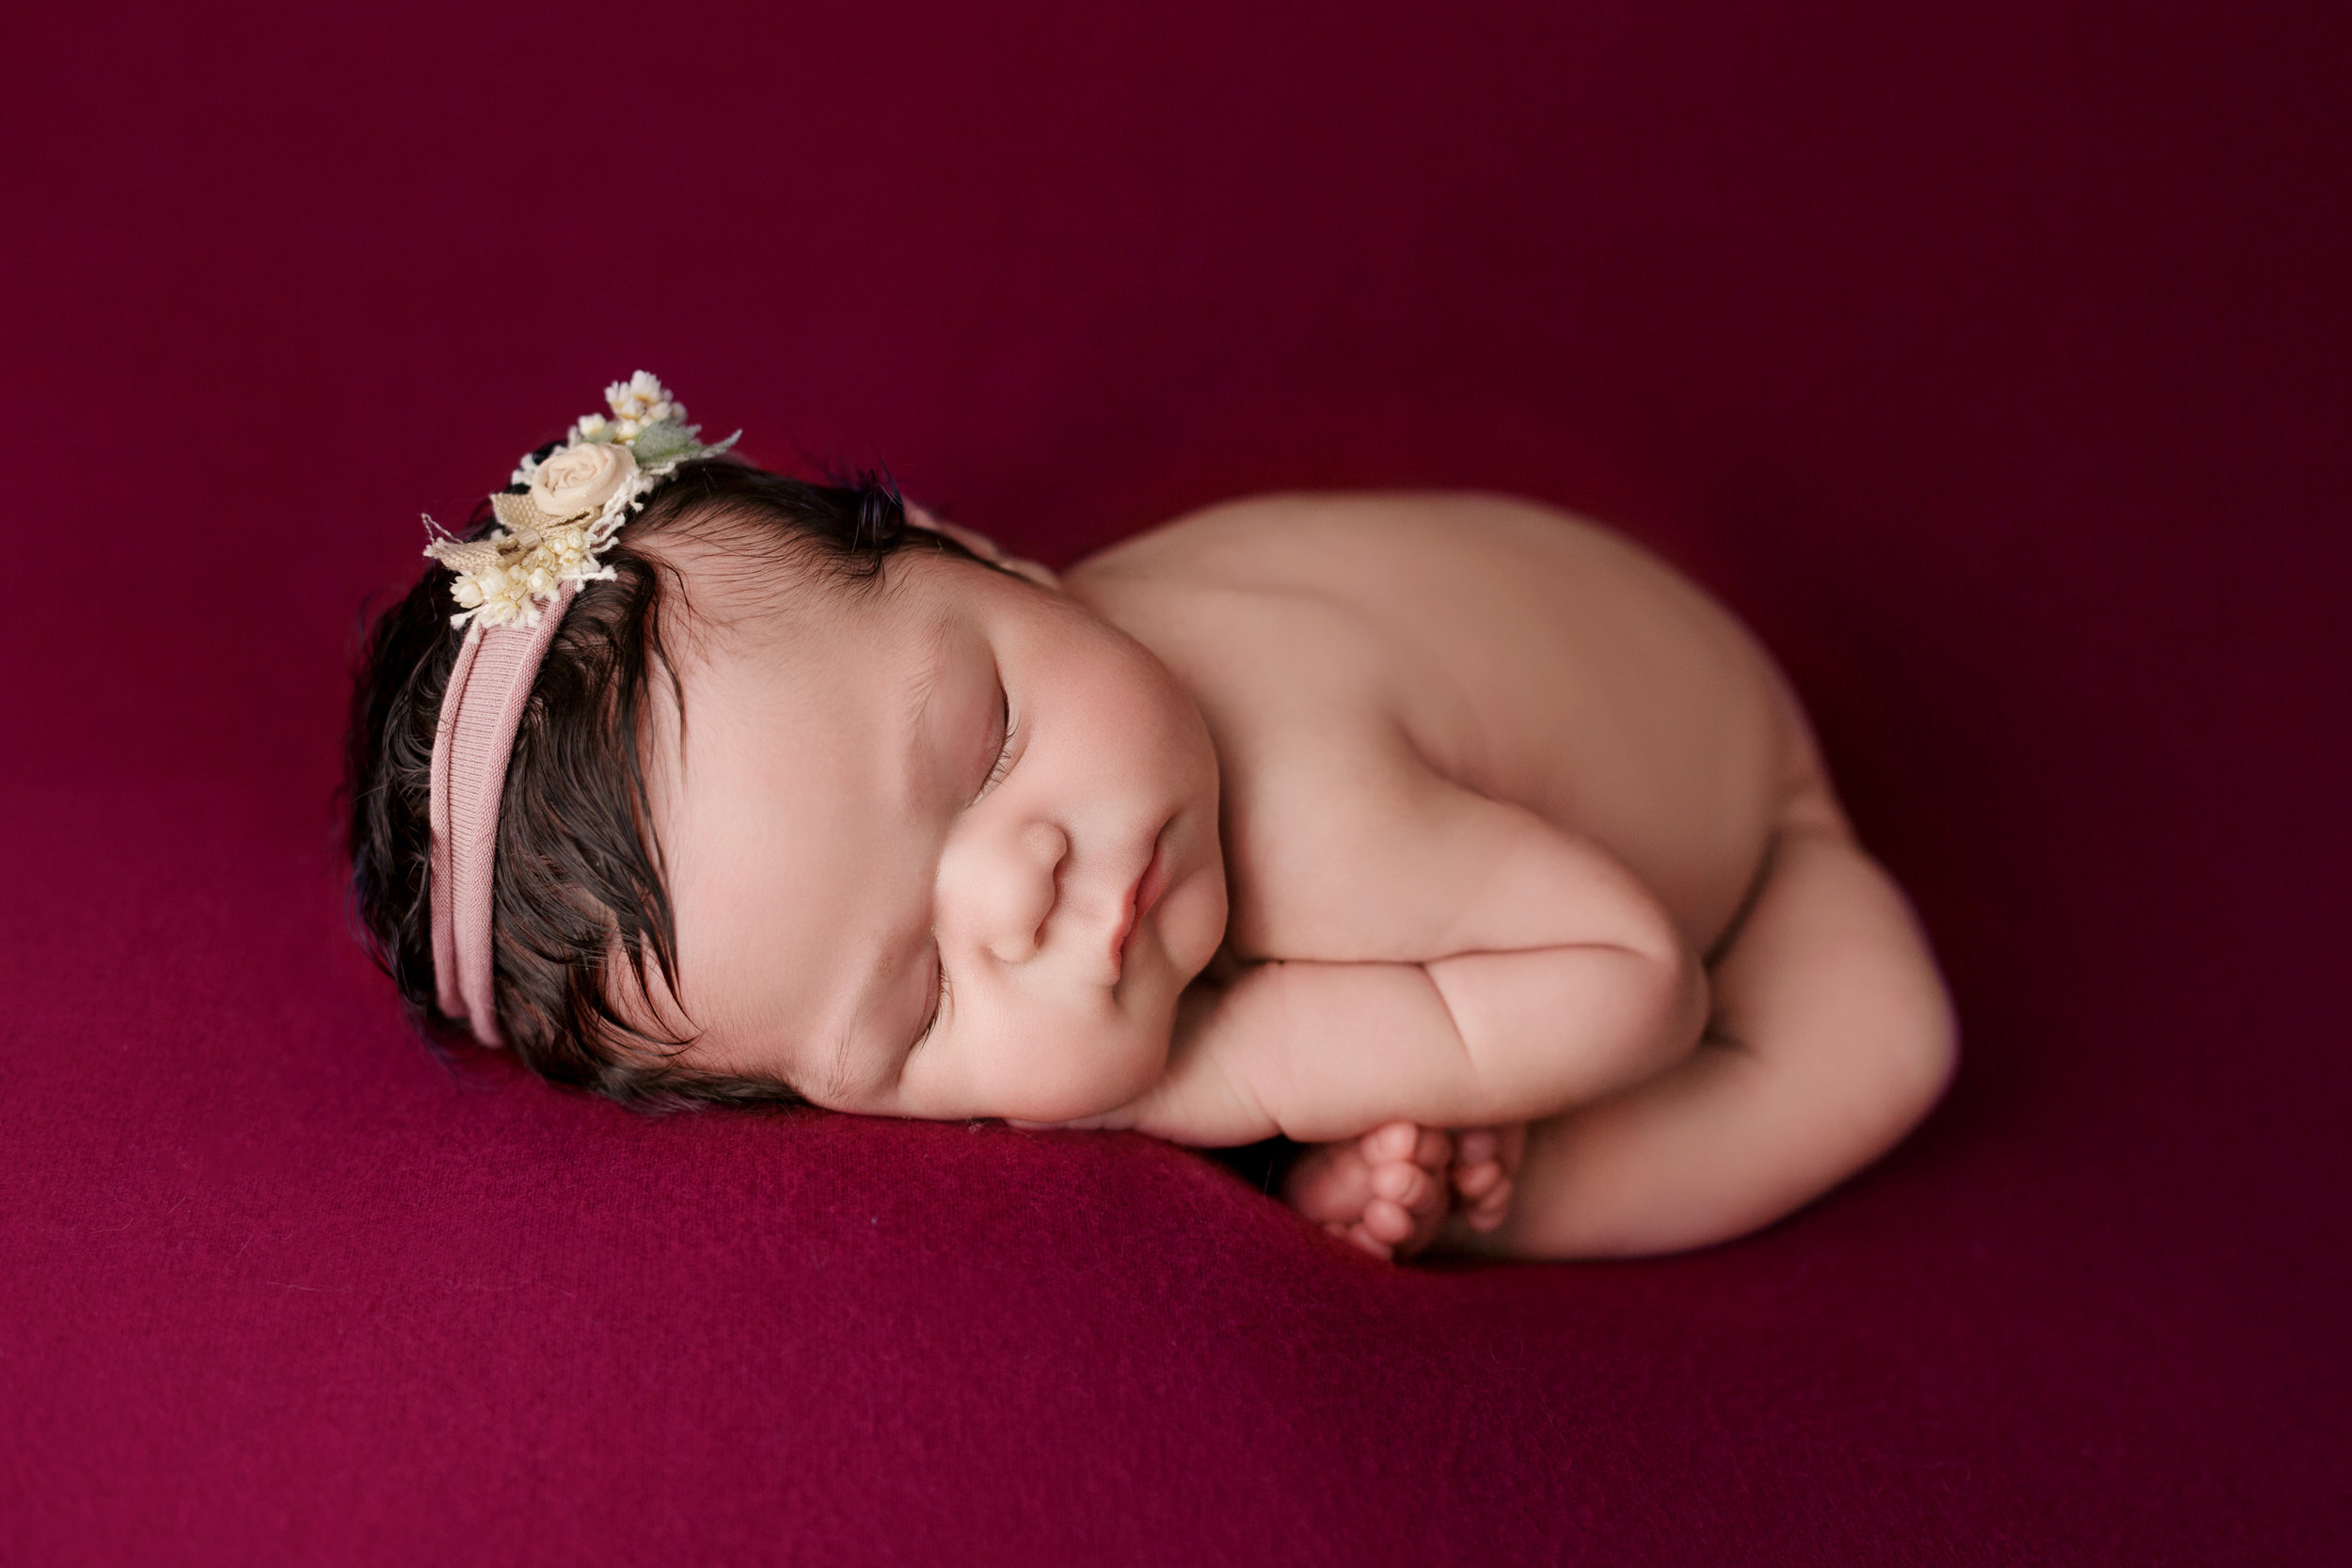 newbornphotographermaryland_baltimorenewborn_sweetblissphoto-4.jpg